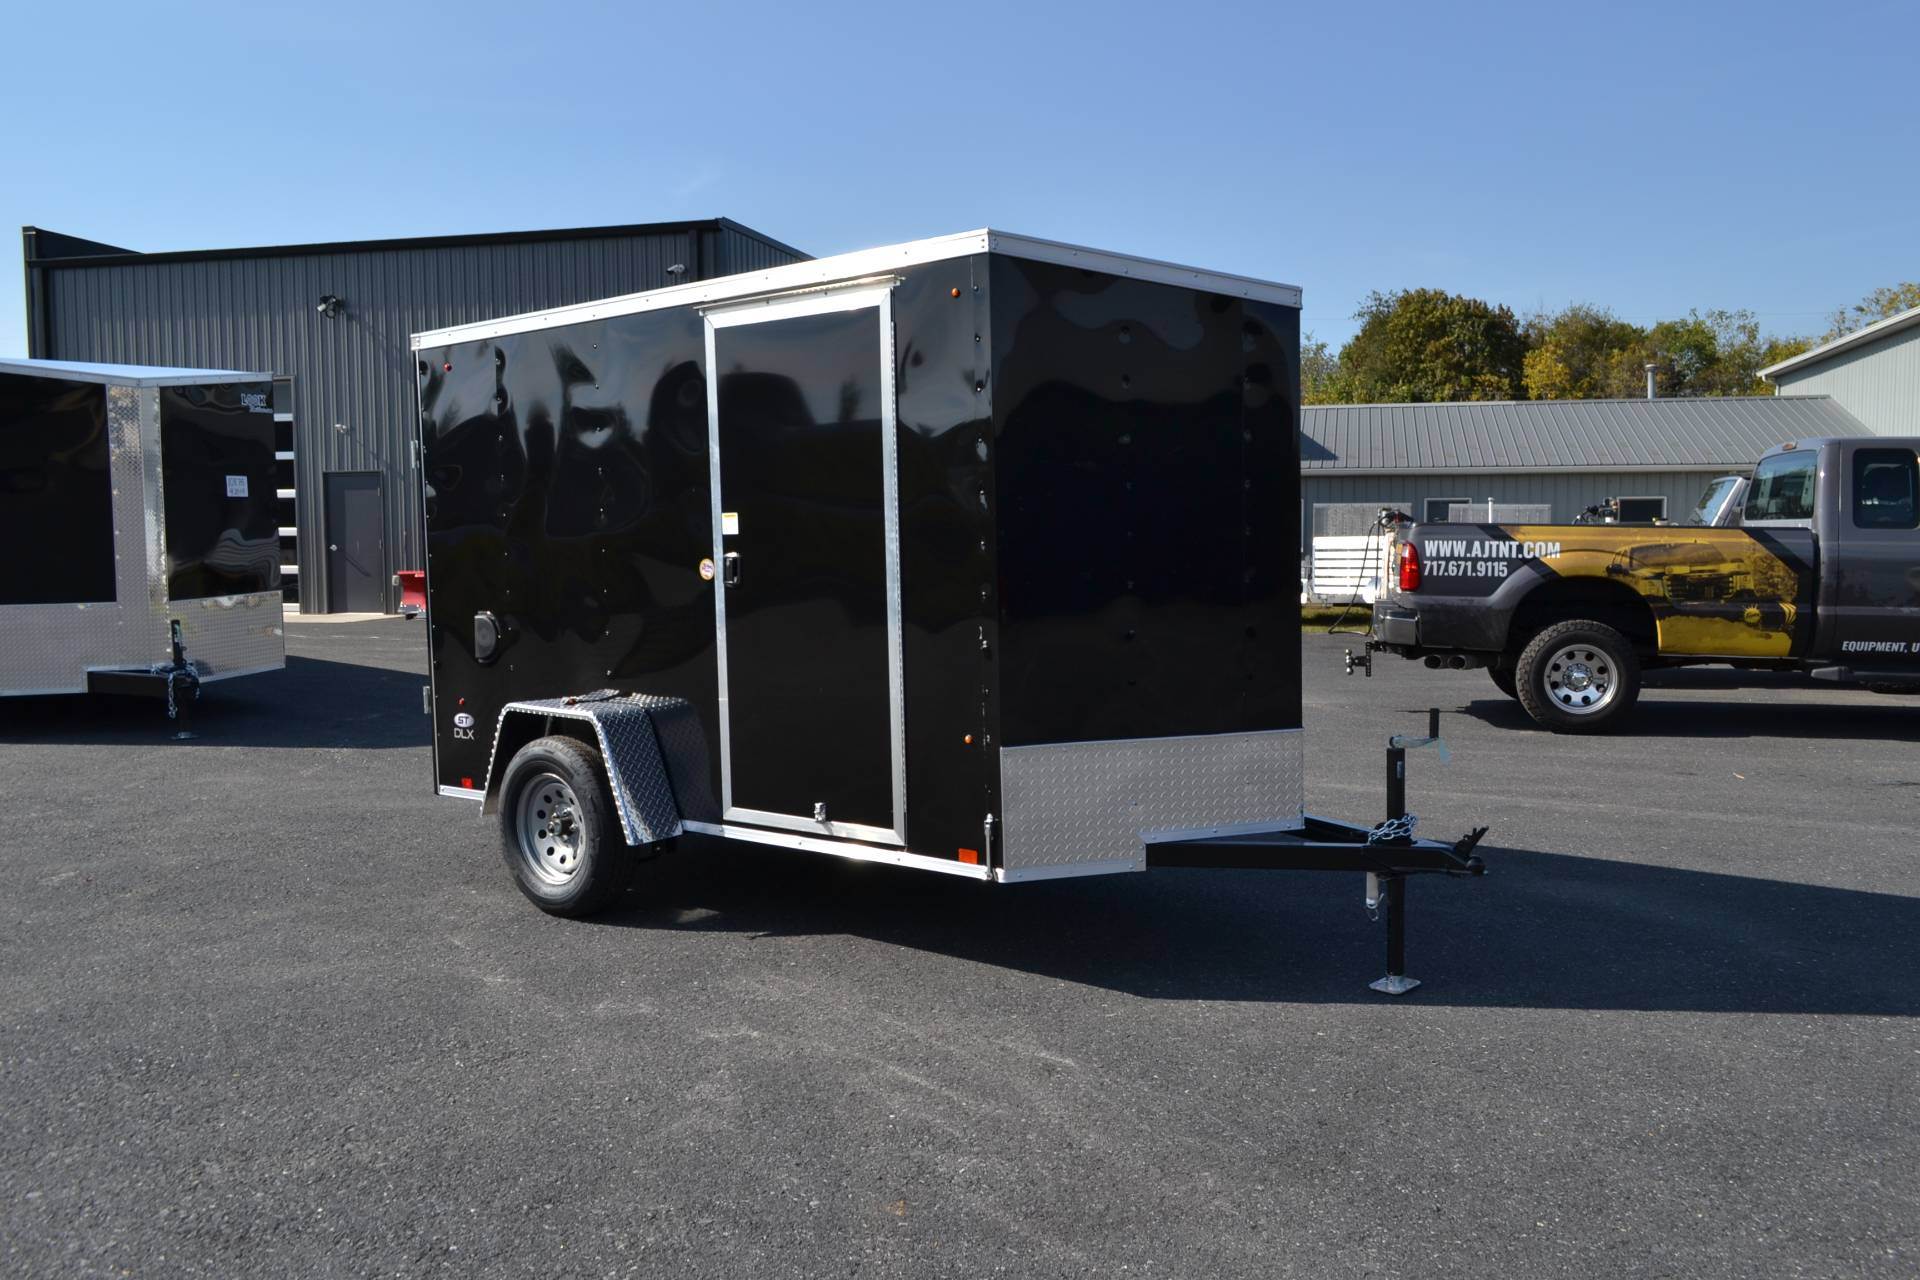 2022 Look Trailers 5X10 STDLX Cargo Trailer Ramp +6 in Harrisburg, Pennsylvania - Photo 2